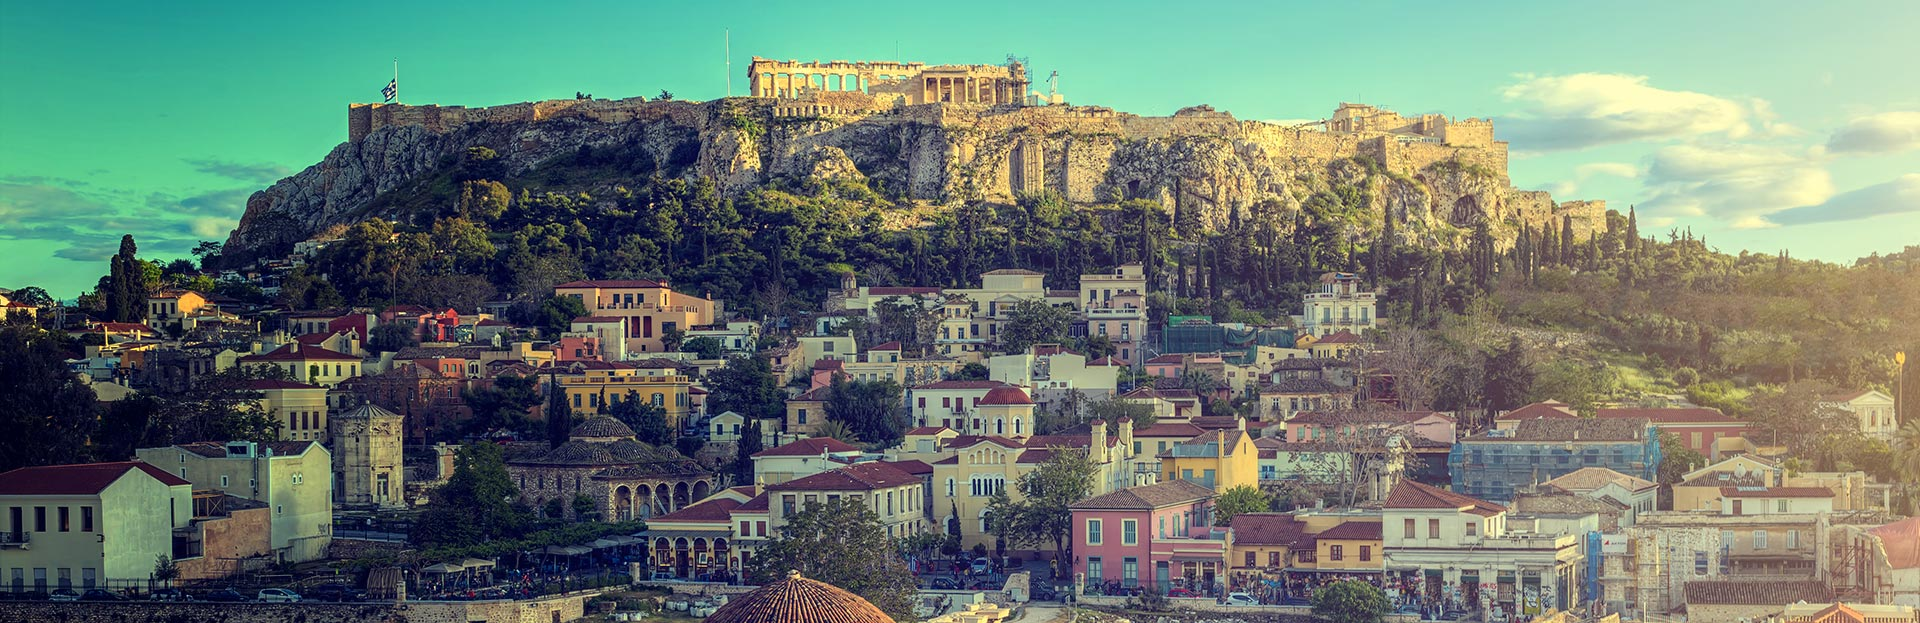 Athens Vacations Packages From Canada